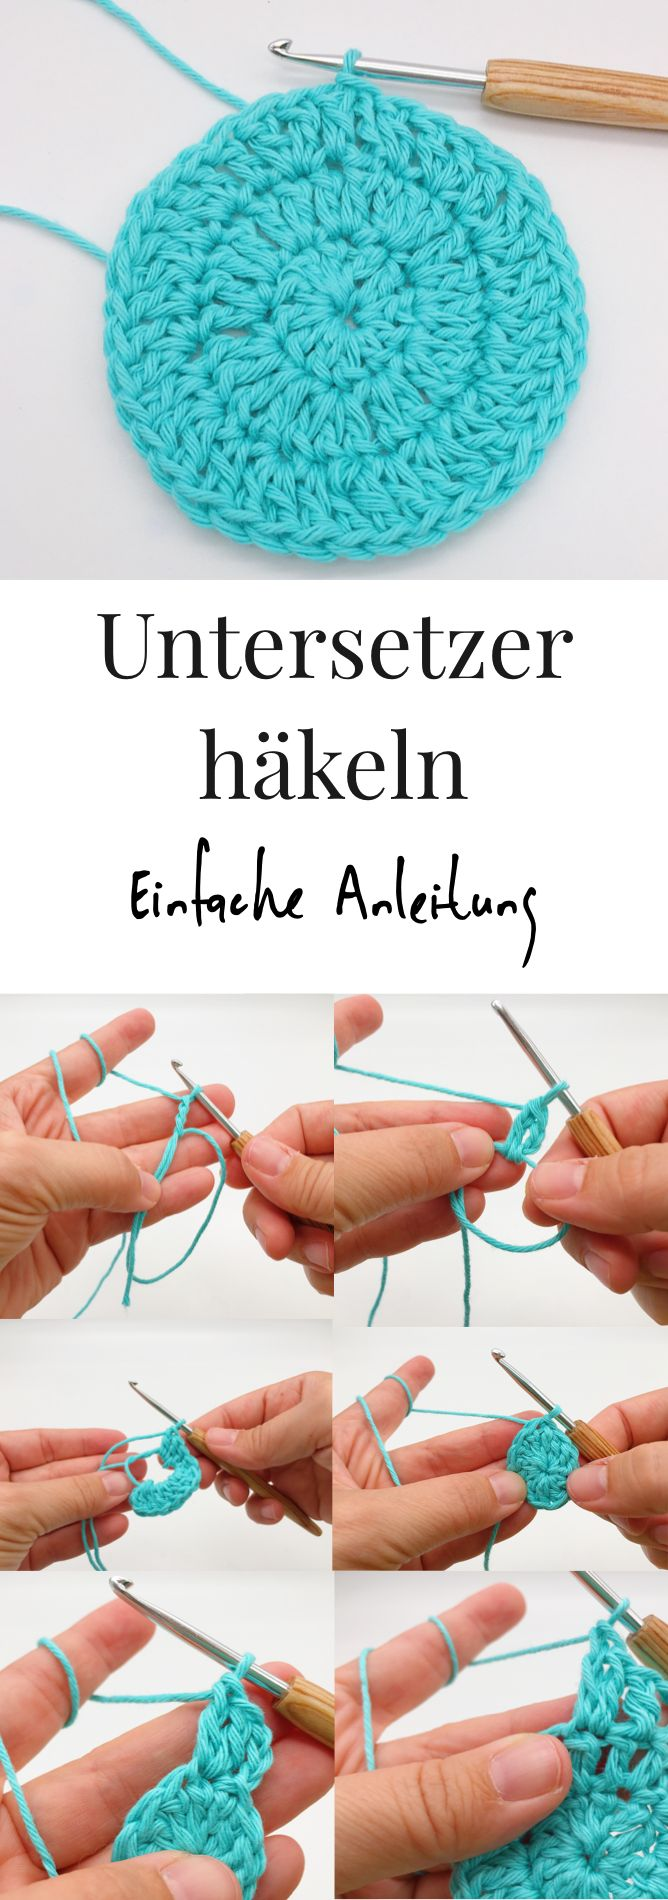 100 best Häkelanleitung images on Pinterest | Stricken häkeln, Diy ...